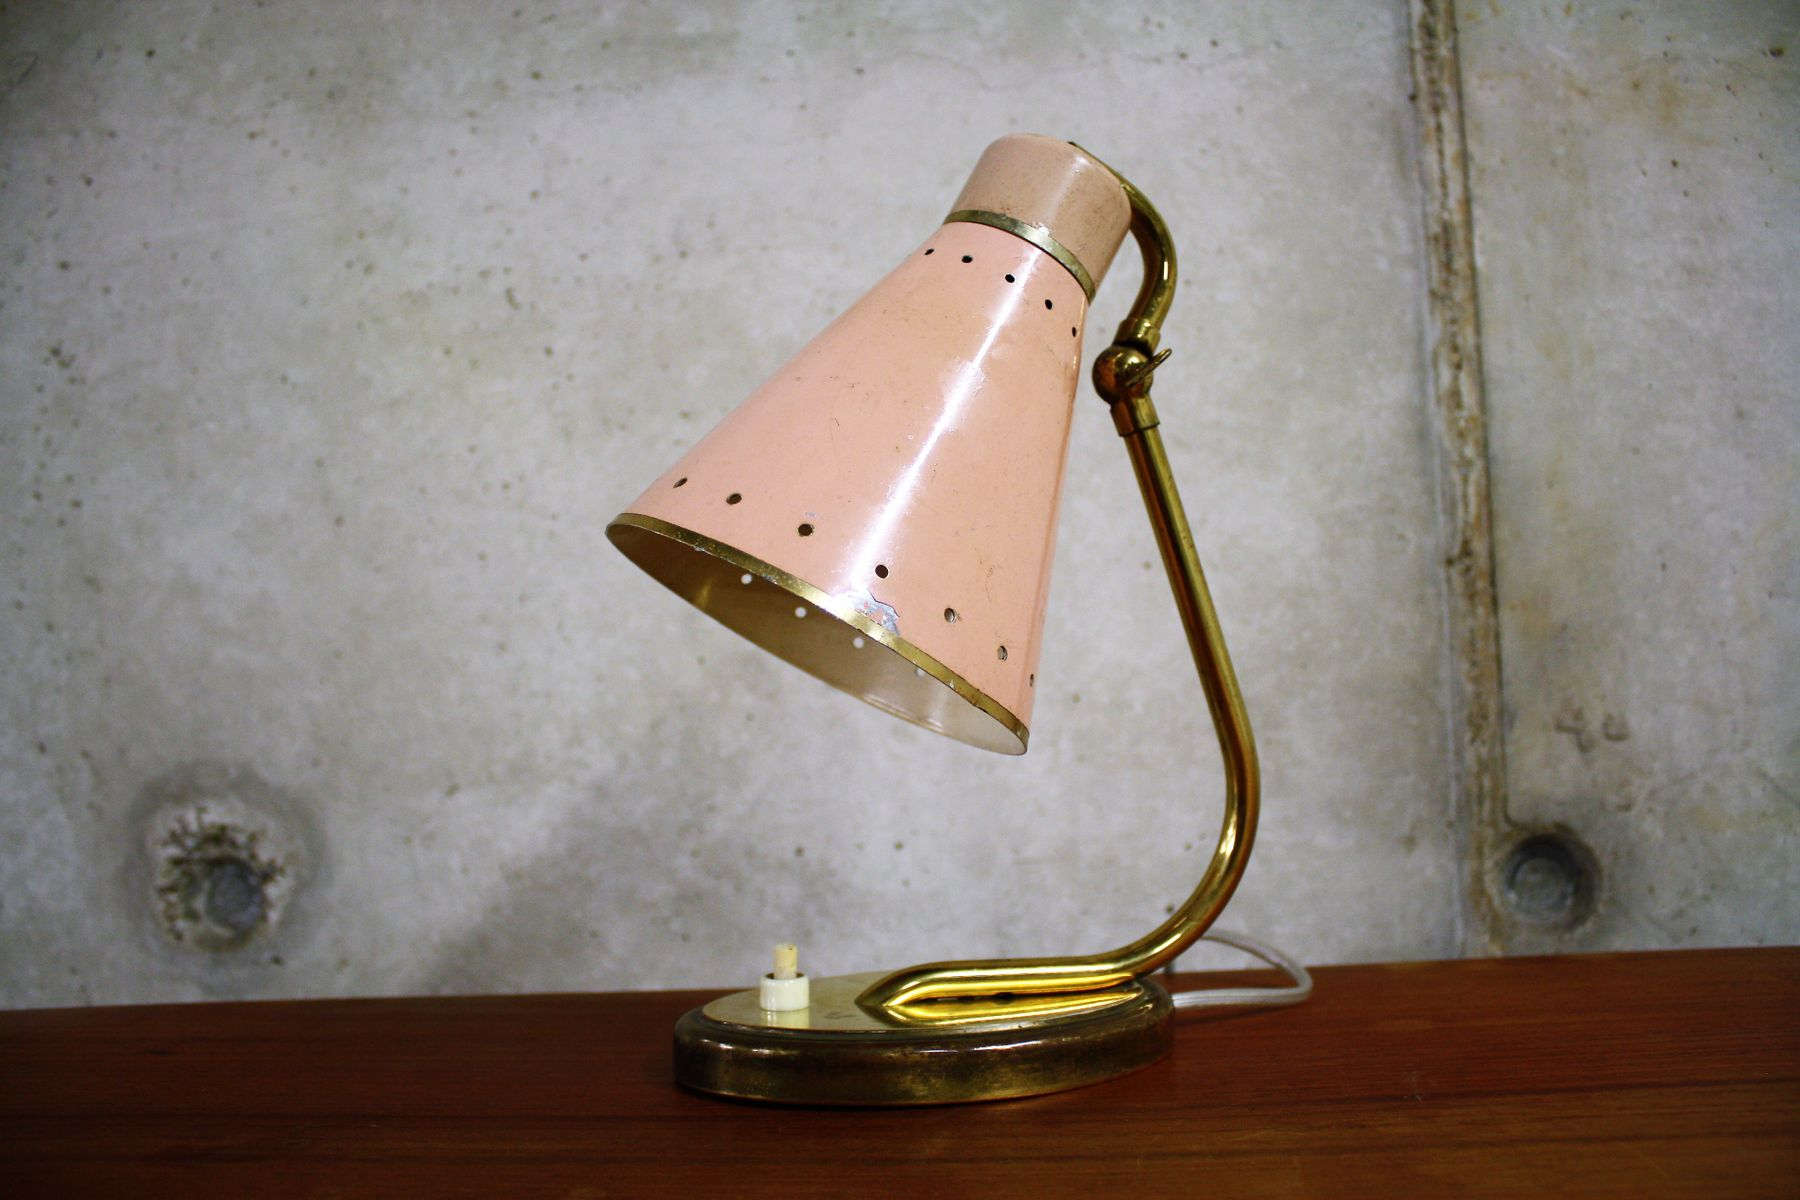 Vintage Danish Table L& 1960s & Vintage Danish Table Lamp 1960s for sale at Pamono azcodes.com